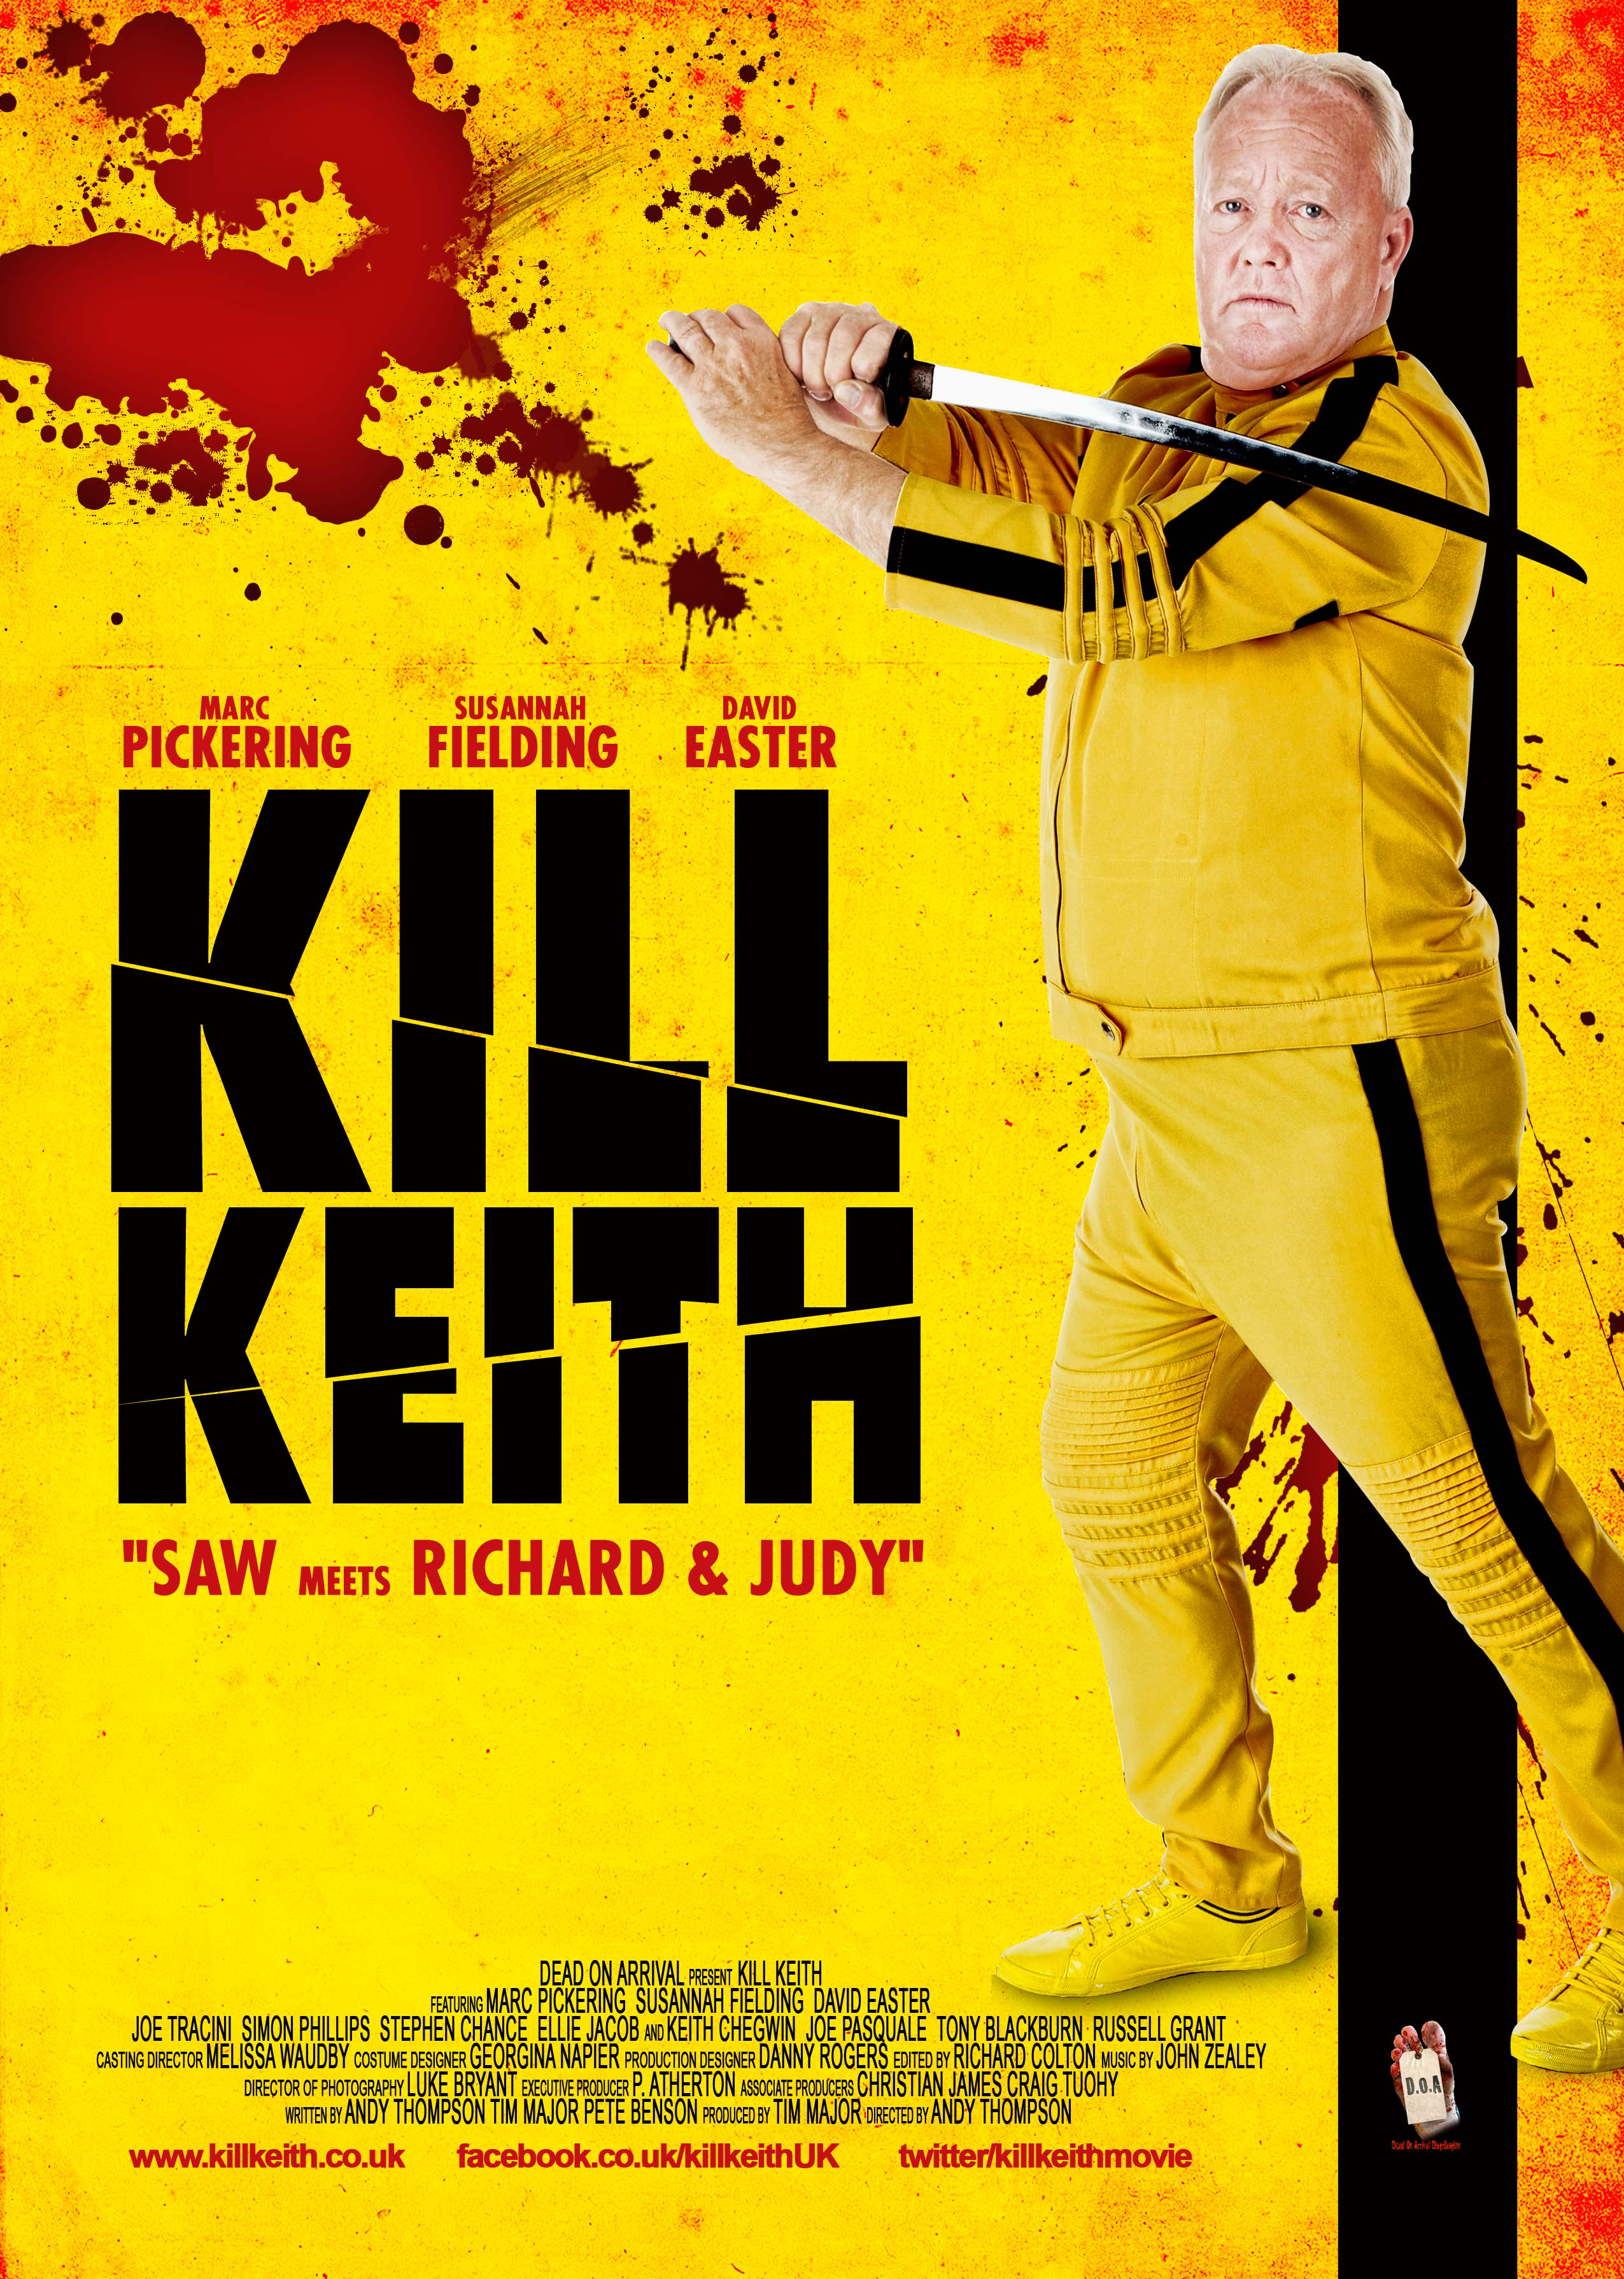 First UK Poster for Kill Keith Starring Keith Chegwin Equipped with Samurai Sword - HeyUGuys